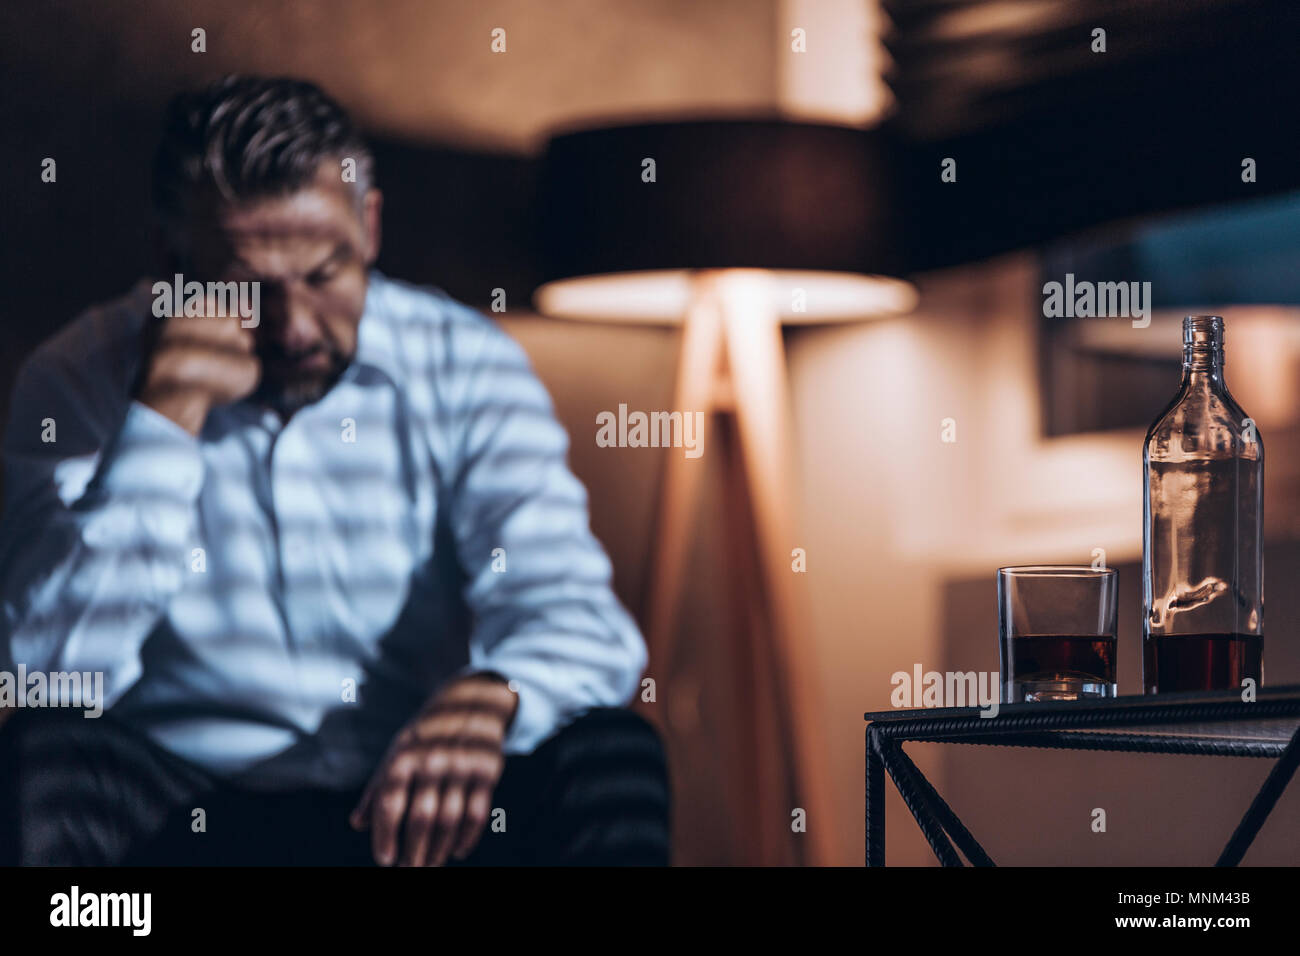 Bottle and glass with alcohol in the foreground and wasted addict sitting in the back (blurred) - Stock Image